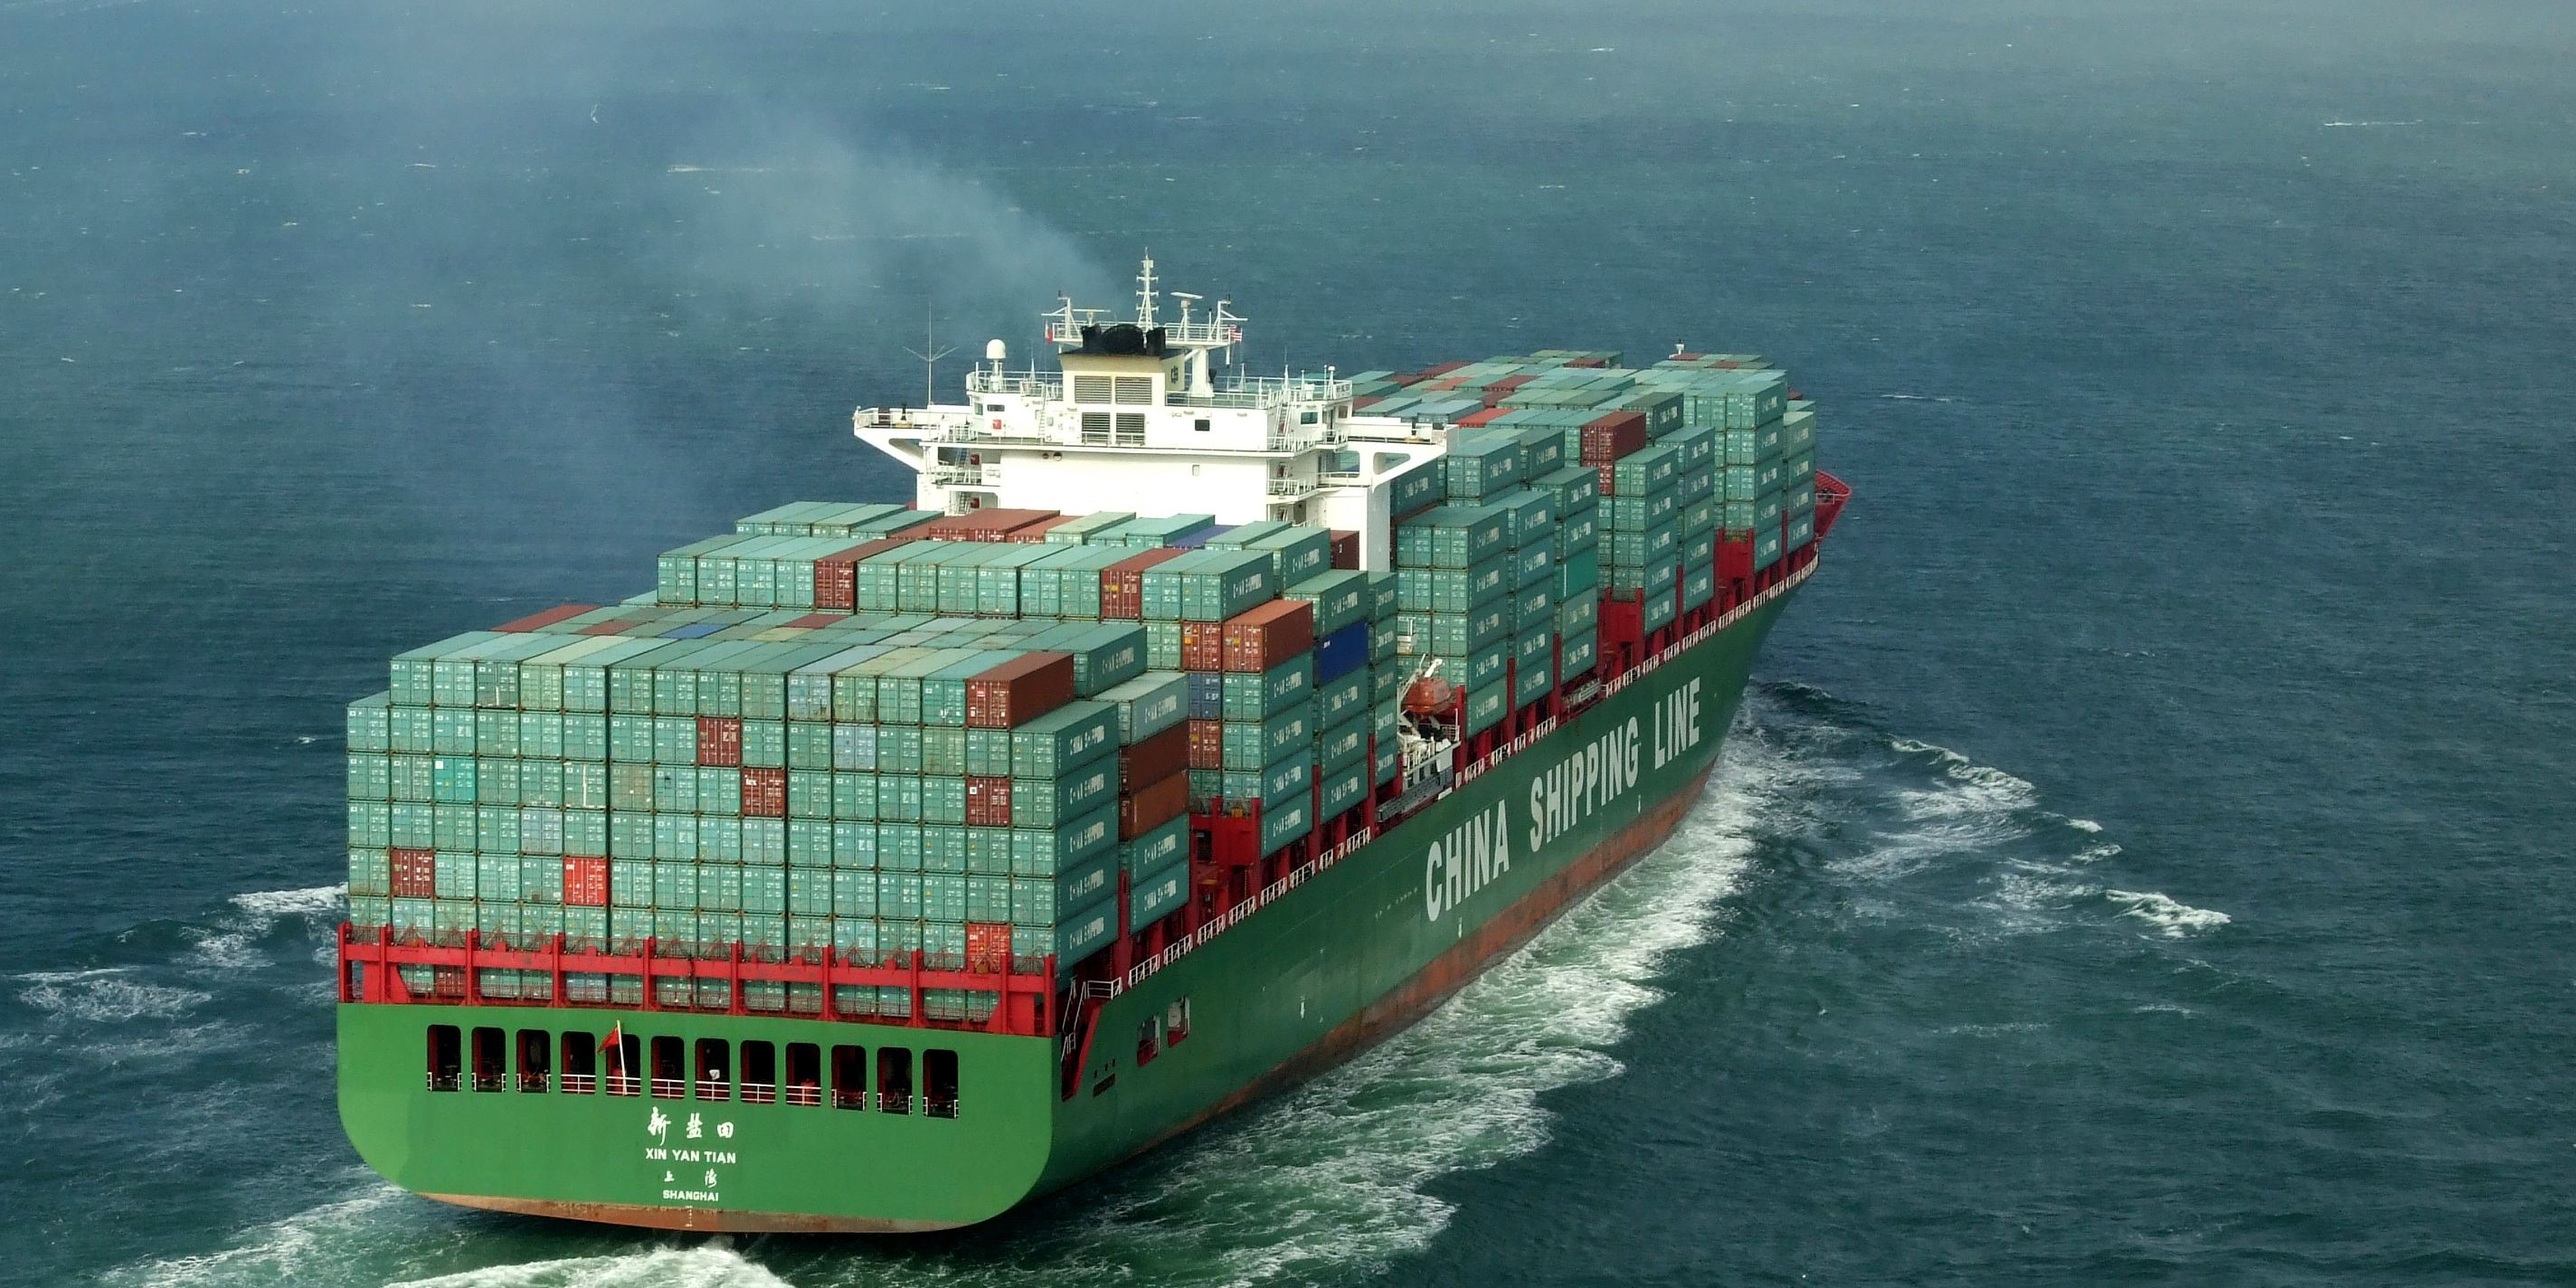 A China Shipping Line container ship steaming ahead on calm seas